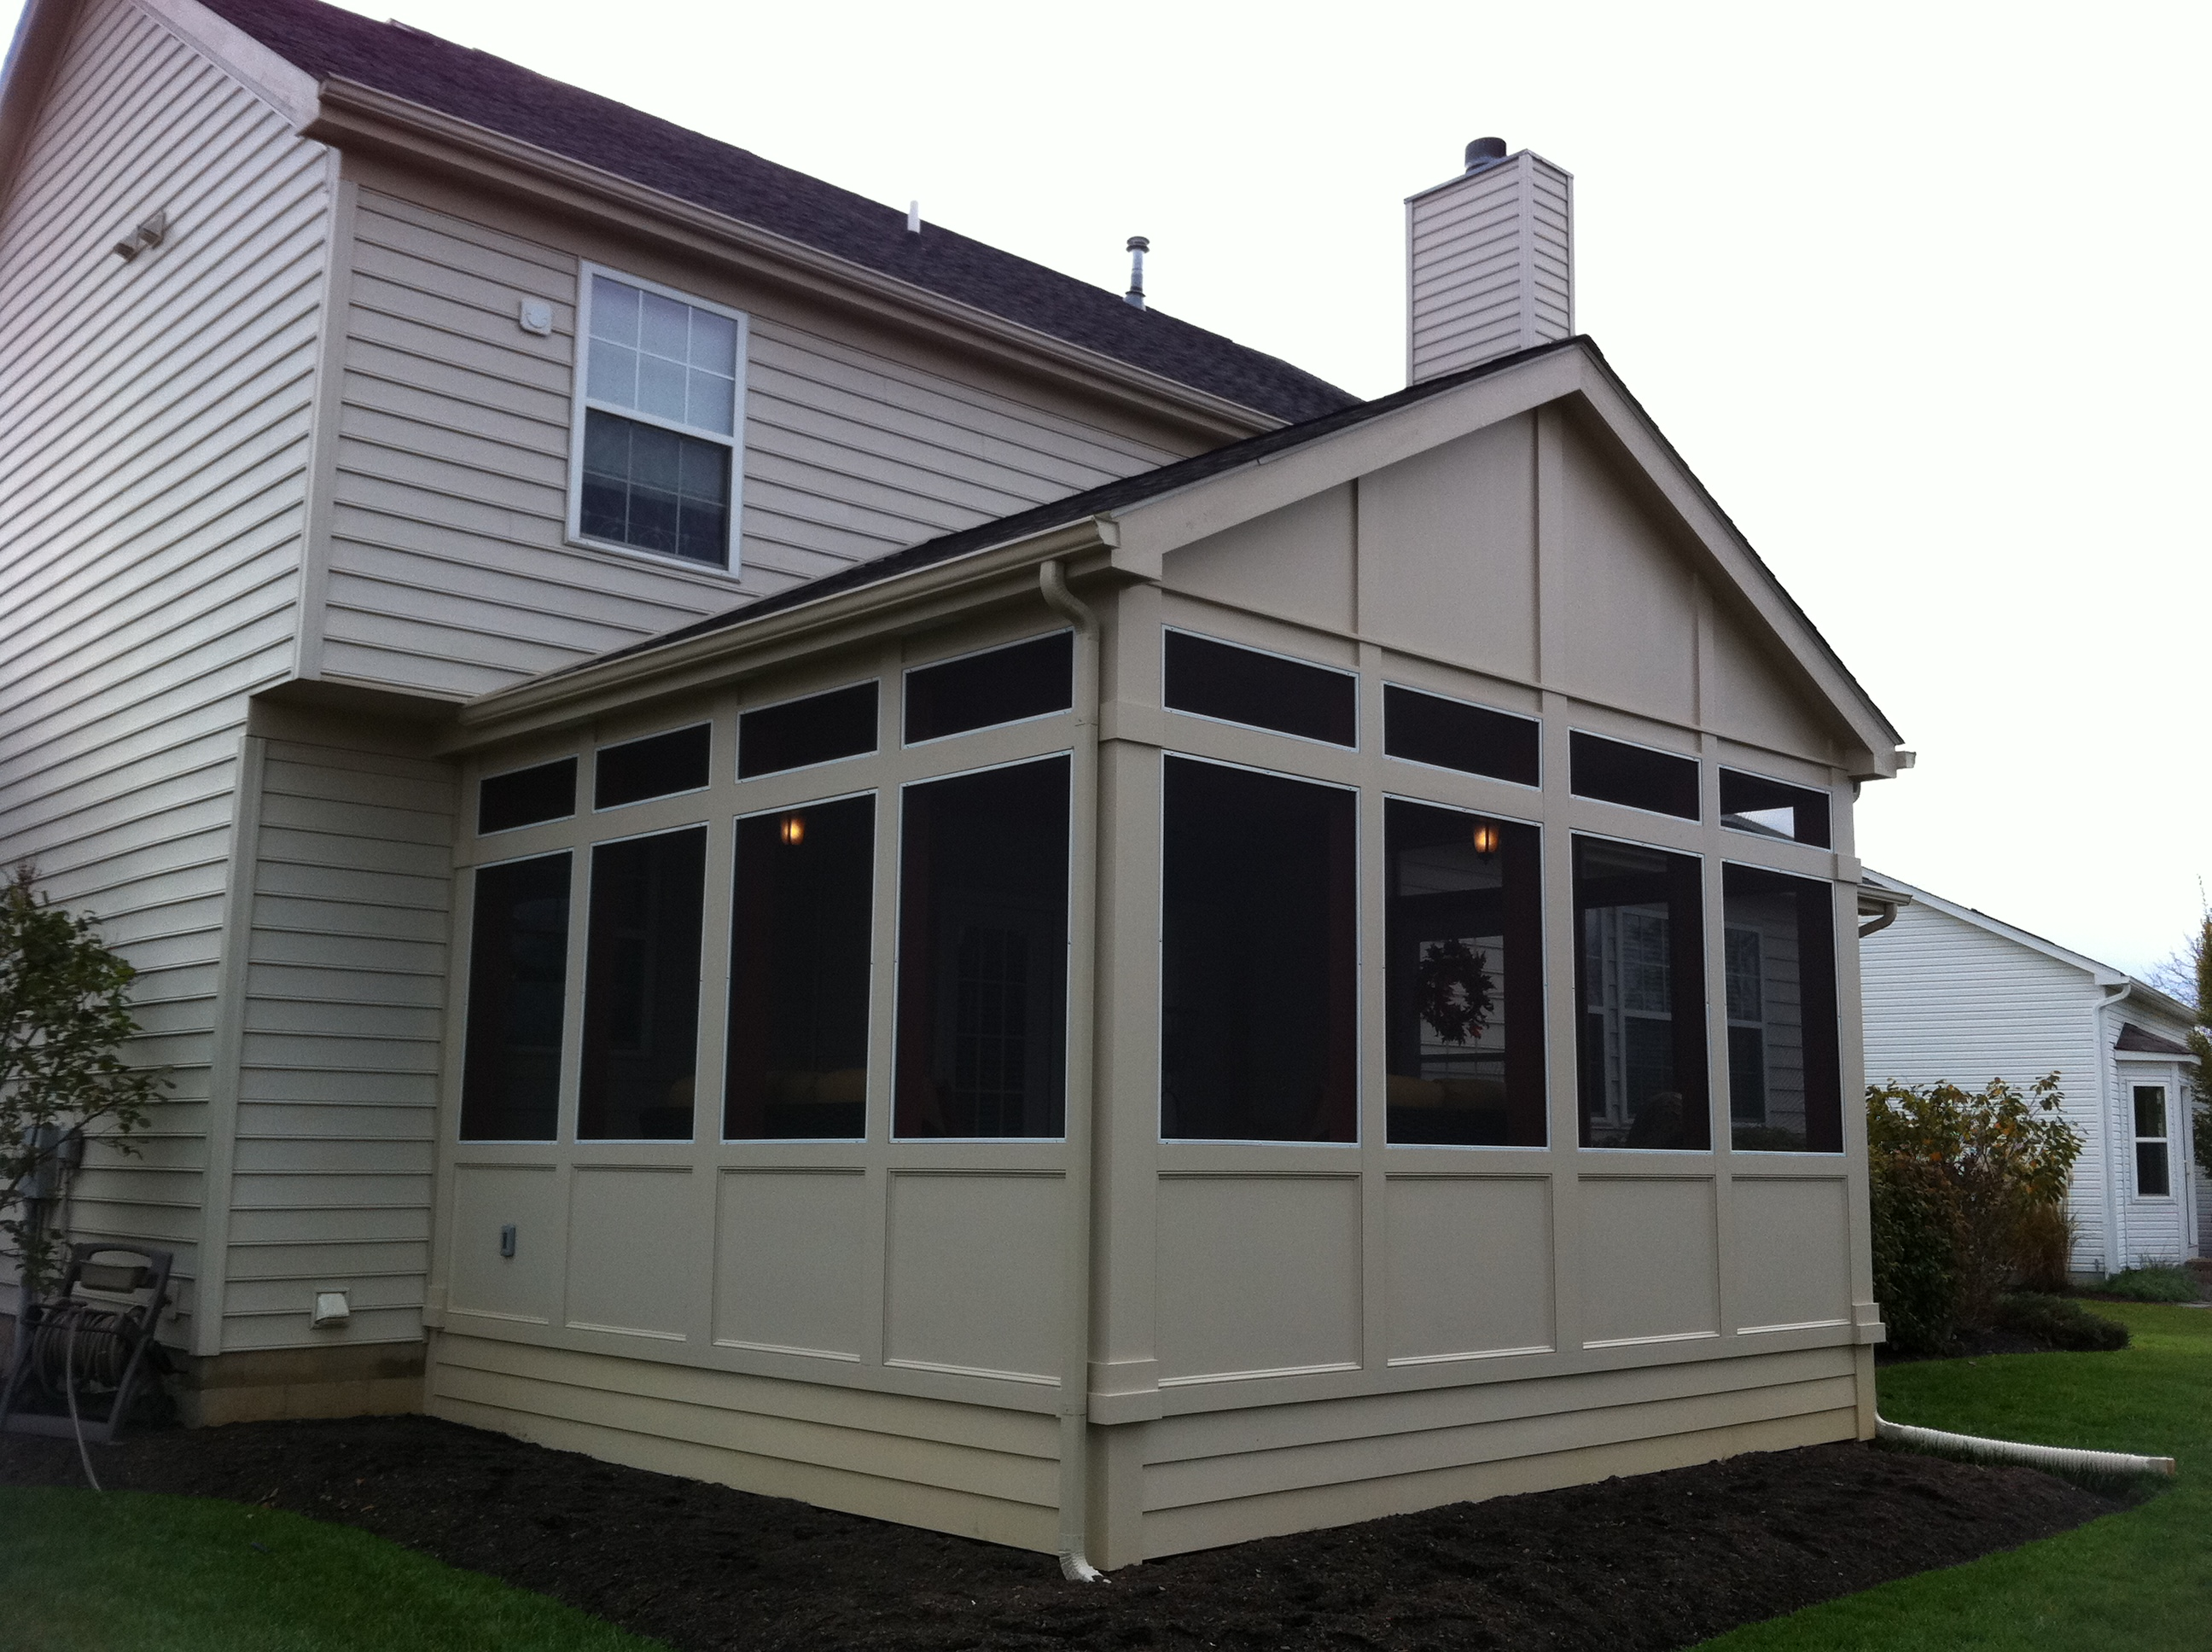 Choosing the right roof style for your Columbus OH screened porch